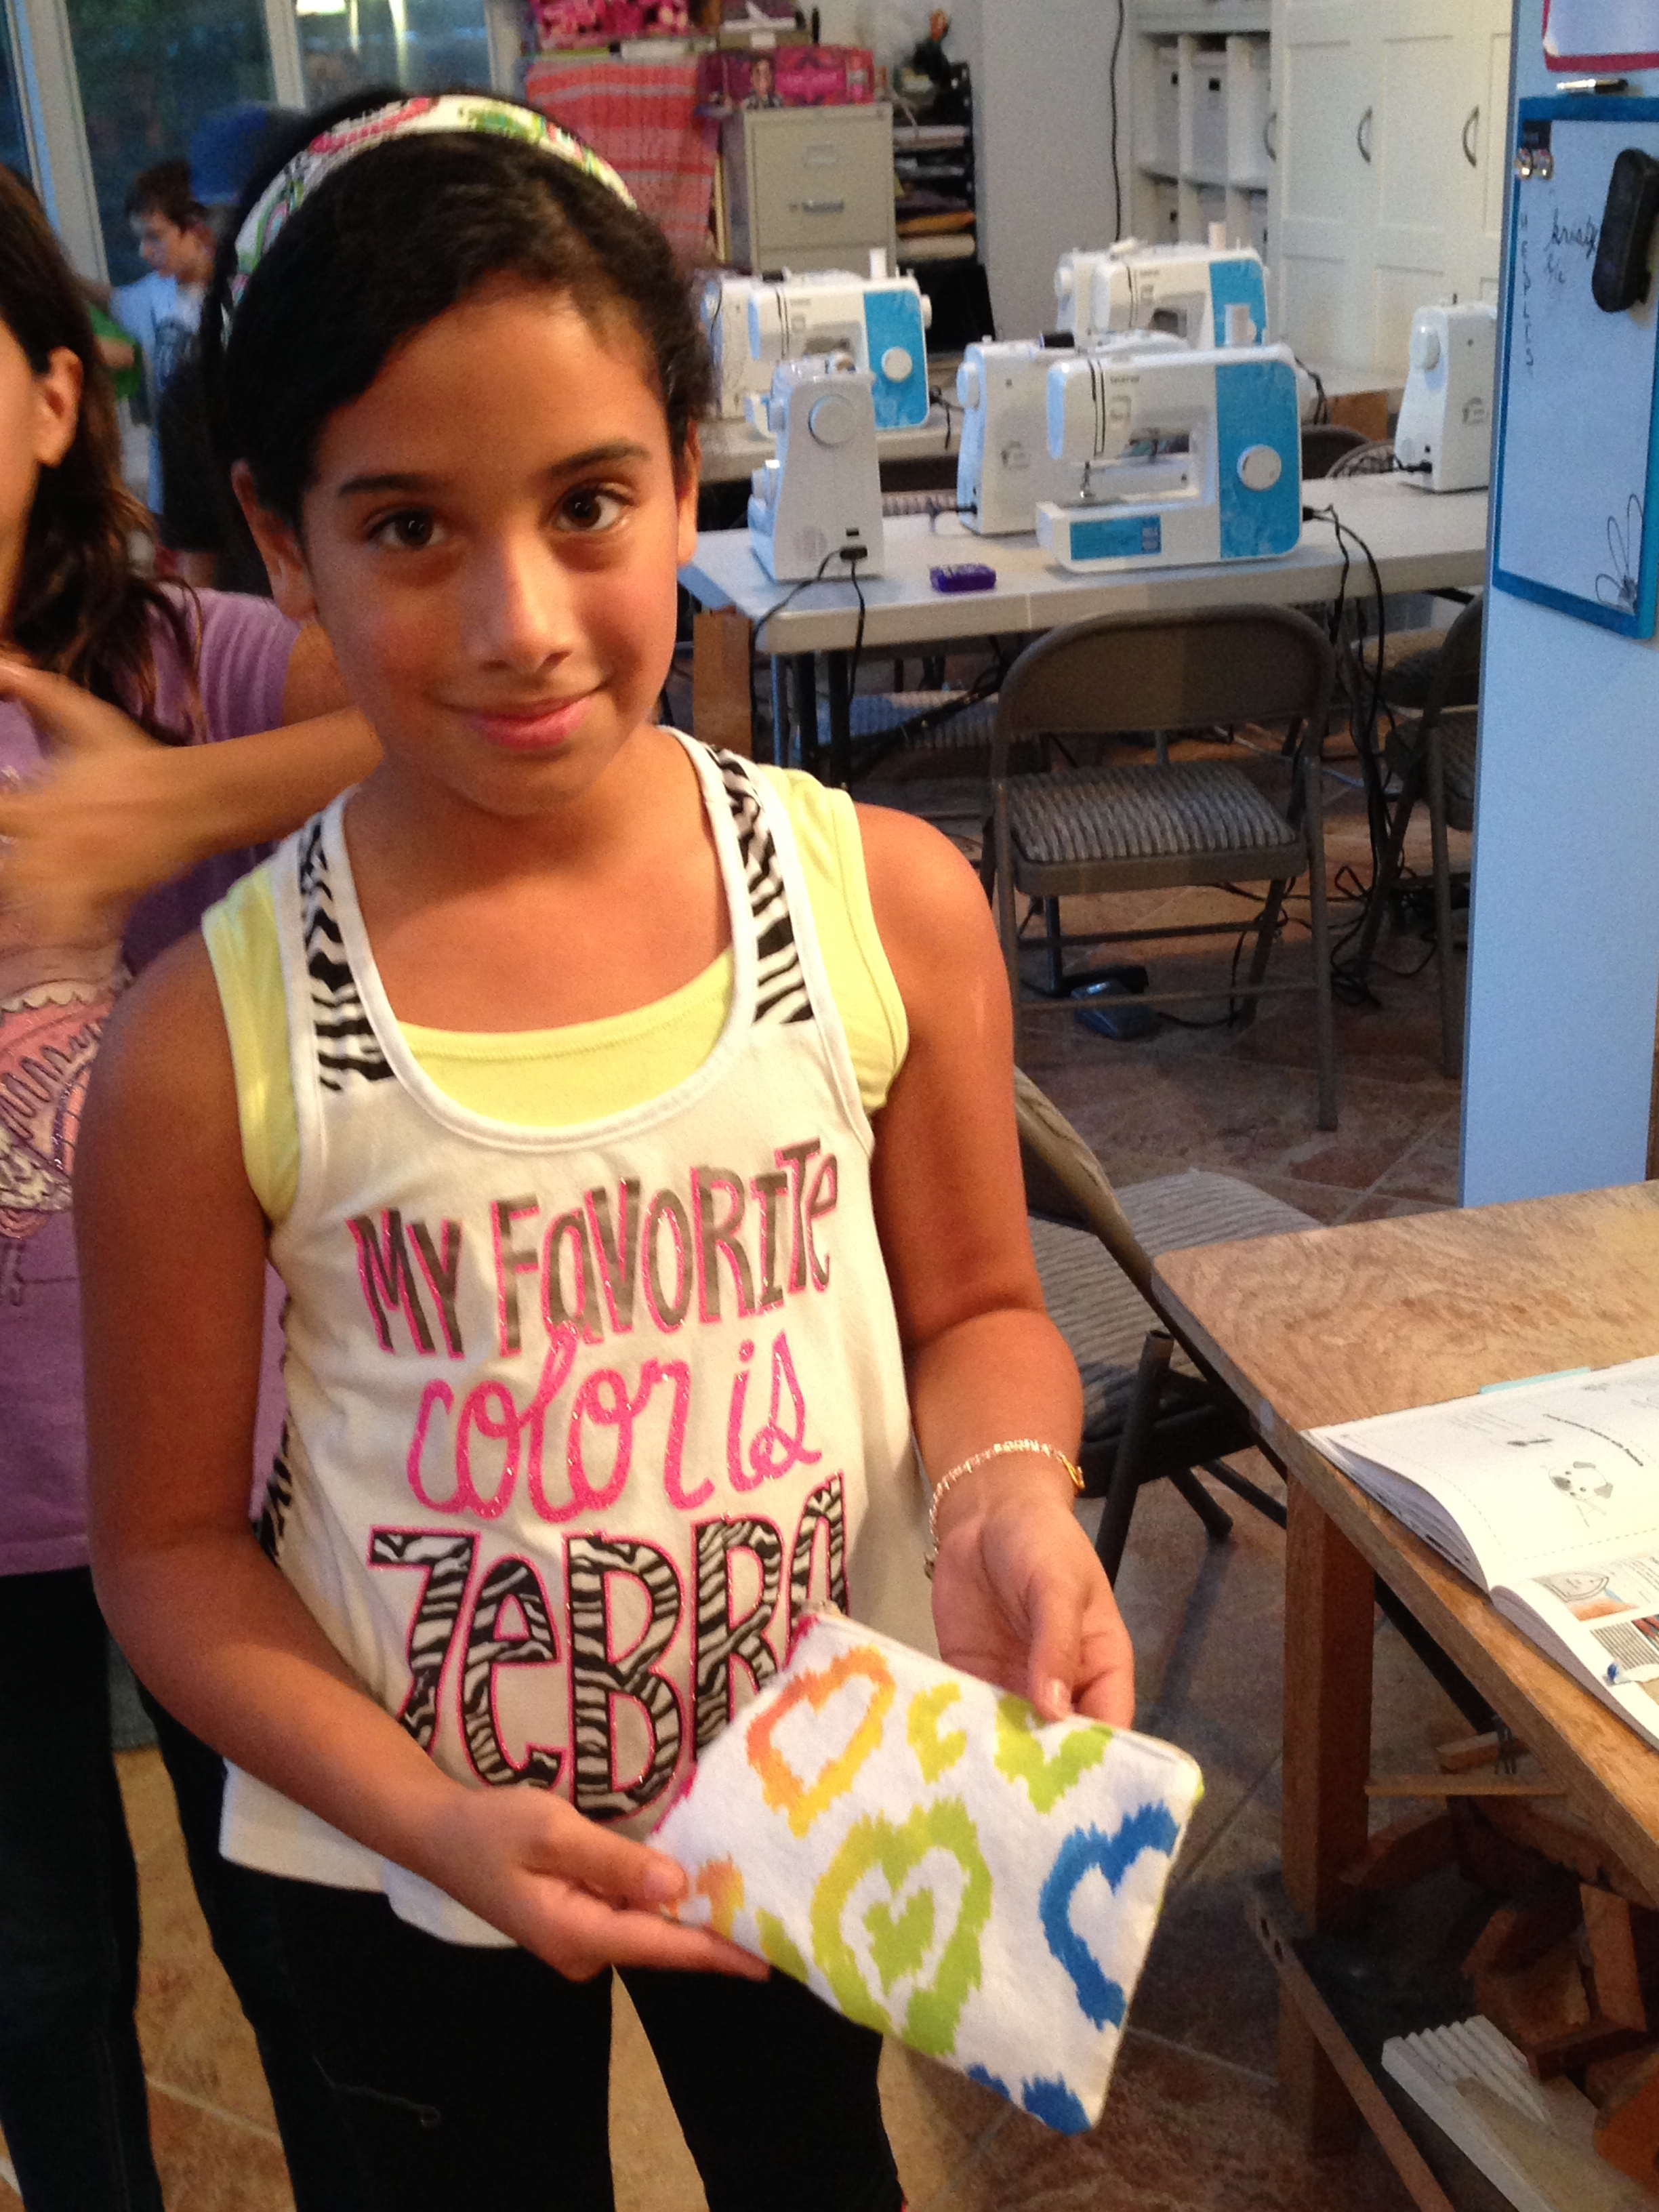 The finish of the zippered pouch - envisioned, started and finished all in one 90 minute class by this 4th grader.